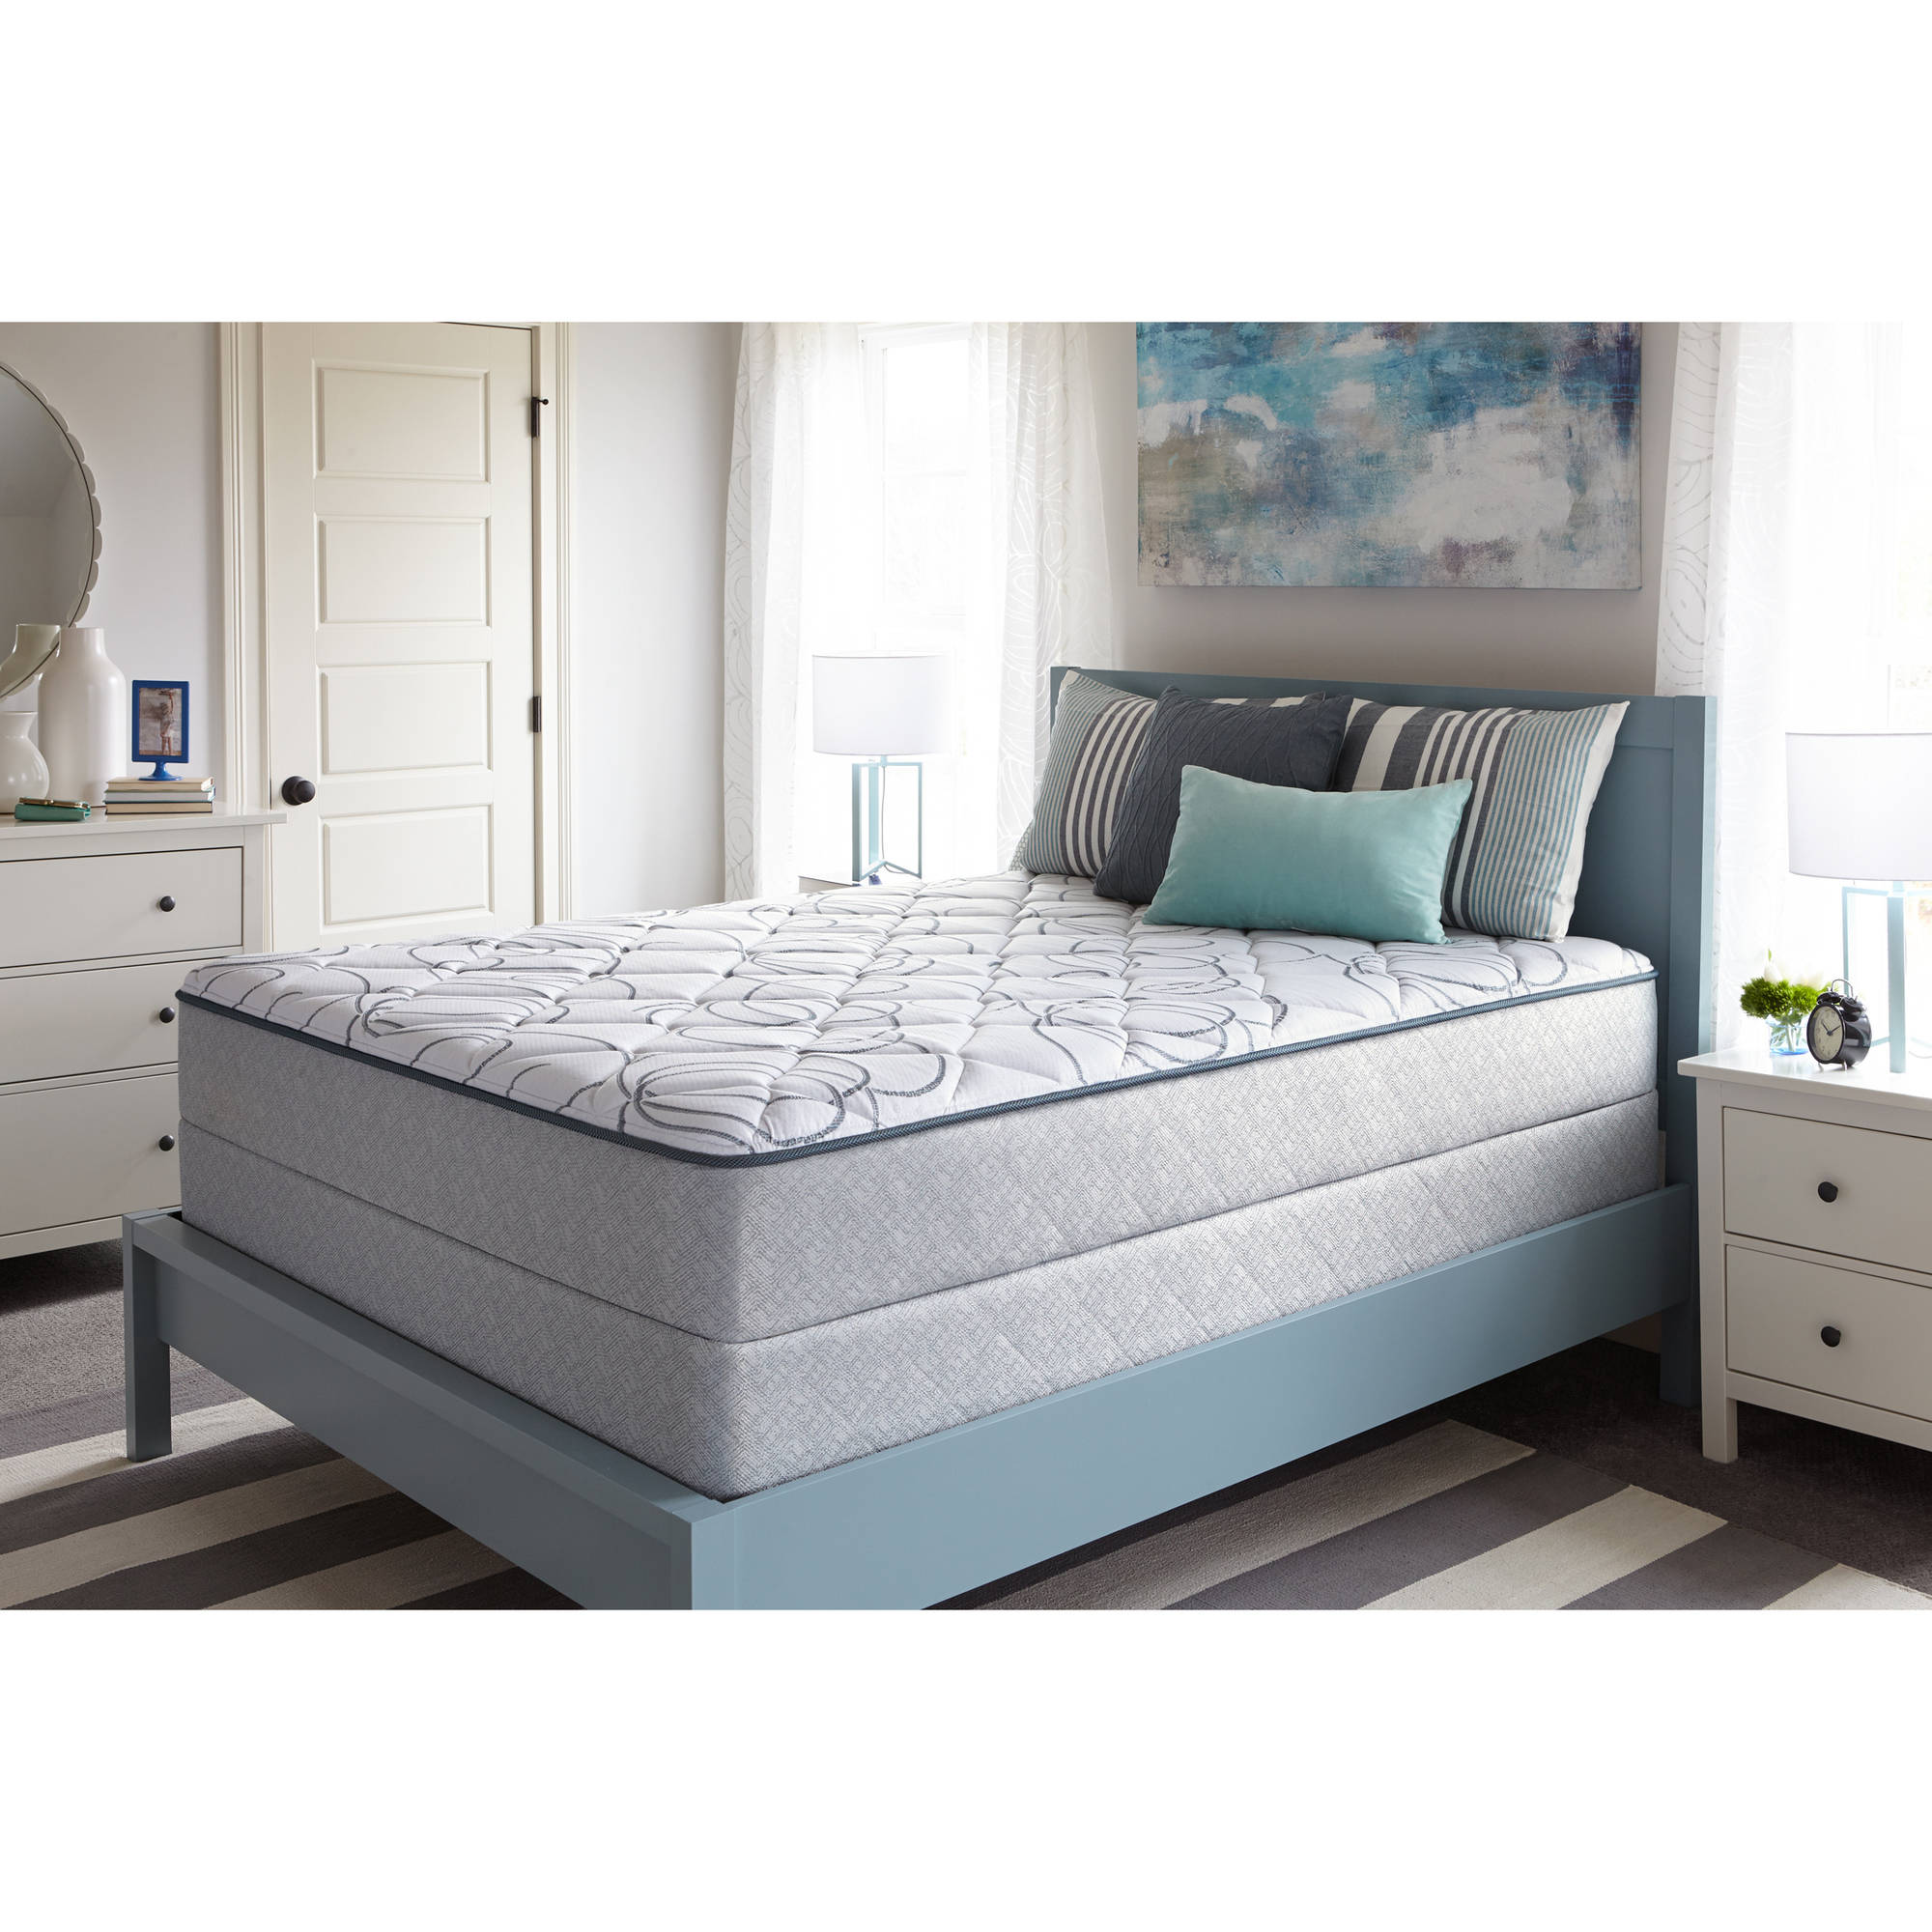 sealy bourdon mattress firm multiple sizes walmartcom